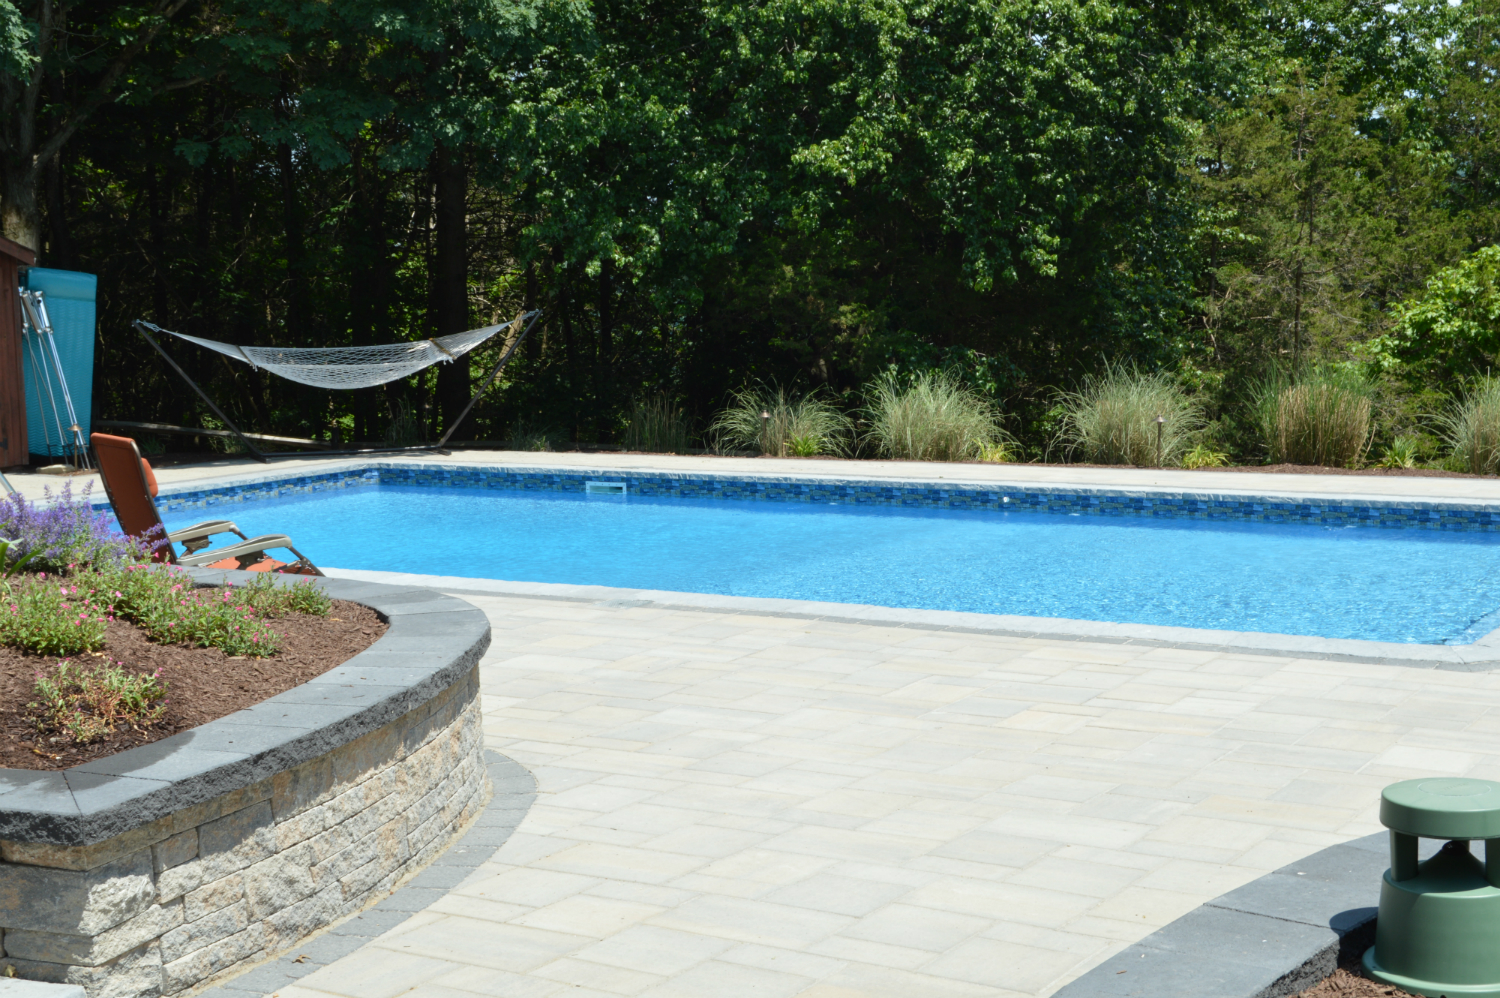 Natural Stone and Greenery for a Welcoming Poolside Atmosphere in Florida, NY